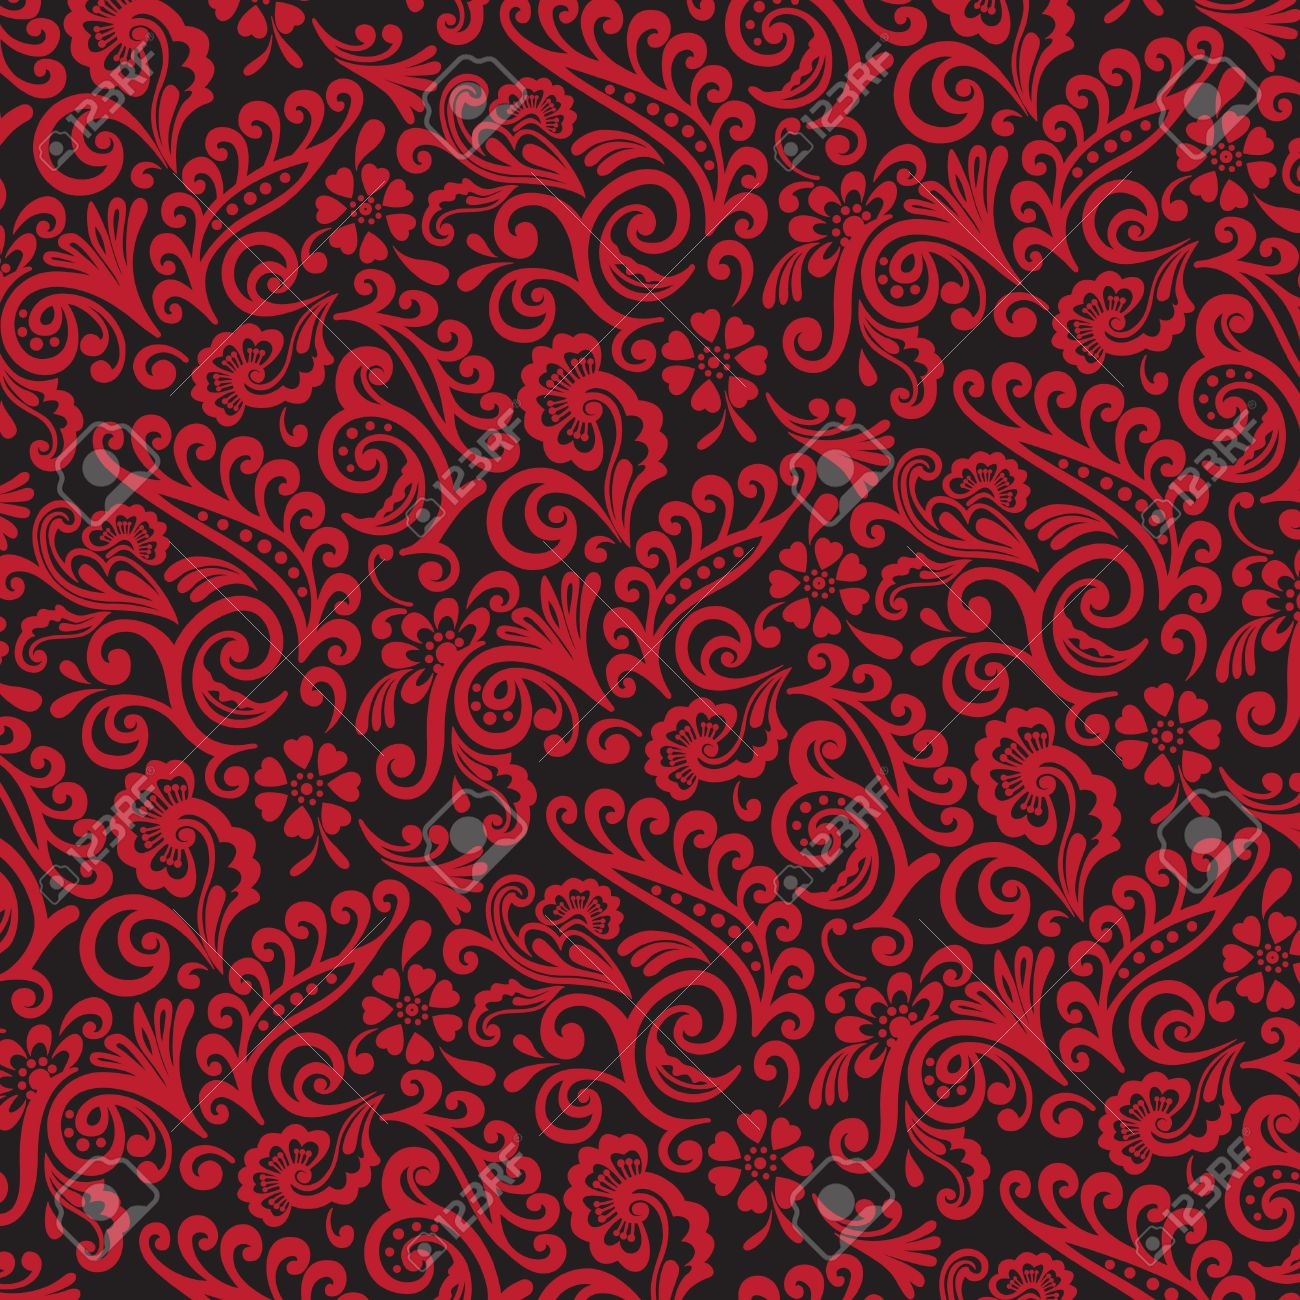 Red and Black Victorian Floral Wallpaper Stock Photo - 16509927 - Red And Black Victorian Floral Wallpaper Stock Photo, Picture And